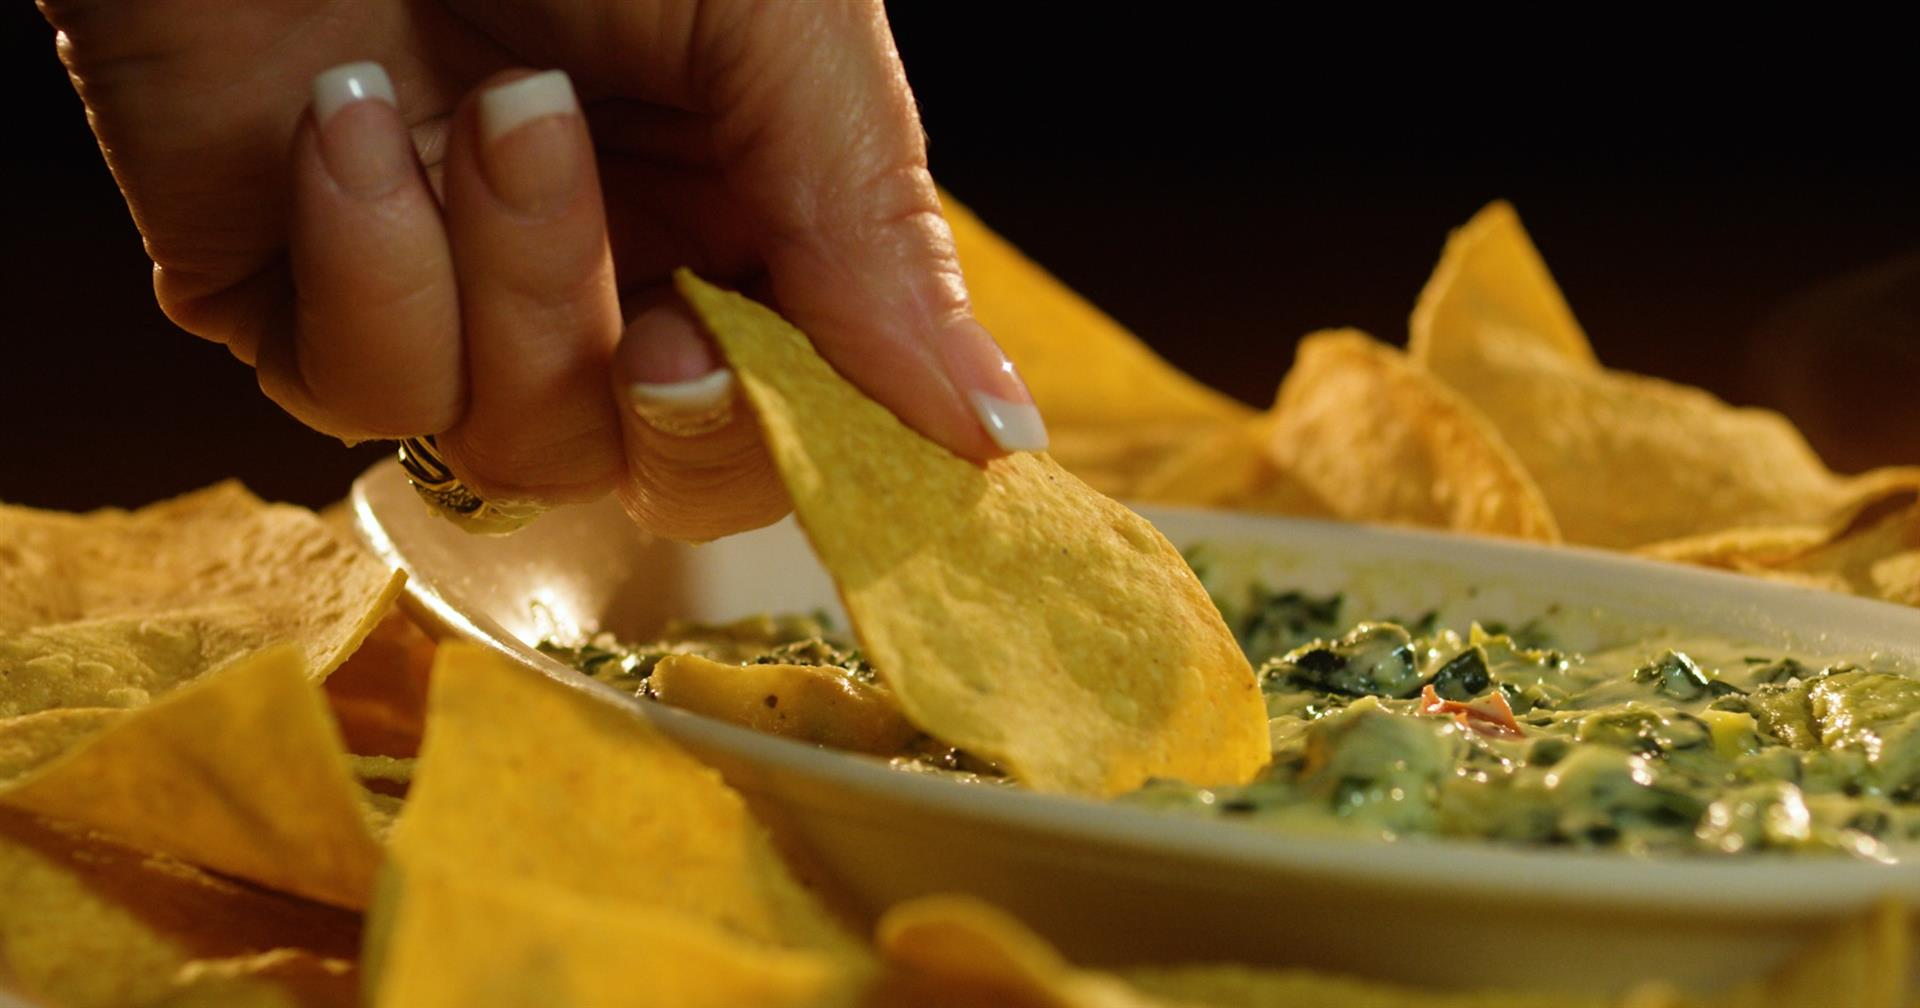 spinach and artichoke dip with chips to dip in it